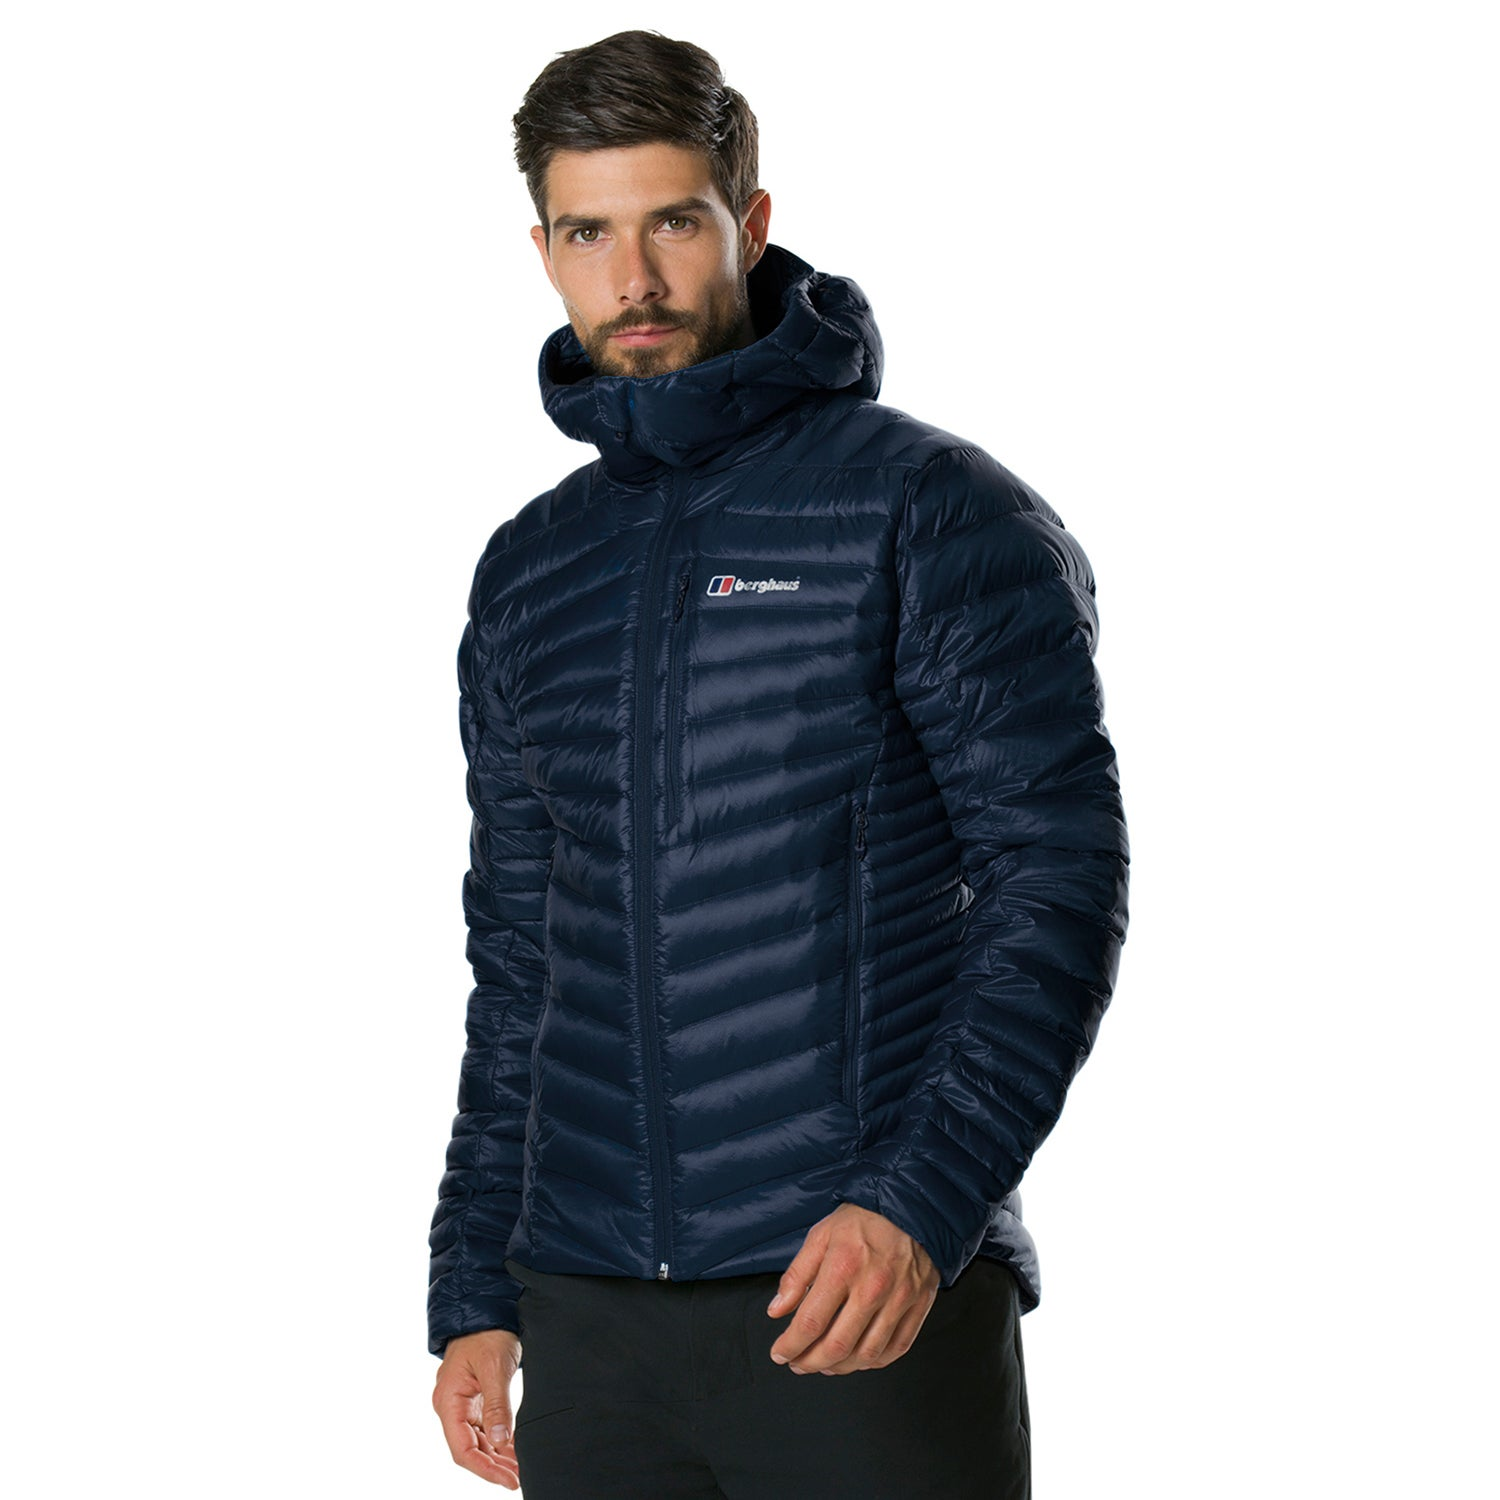 3bc3d9d0f Berghaus Extrem Micro 2.0 Down Jacket